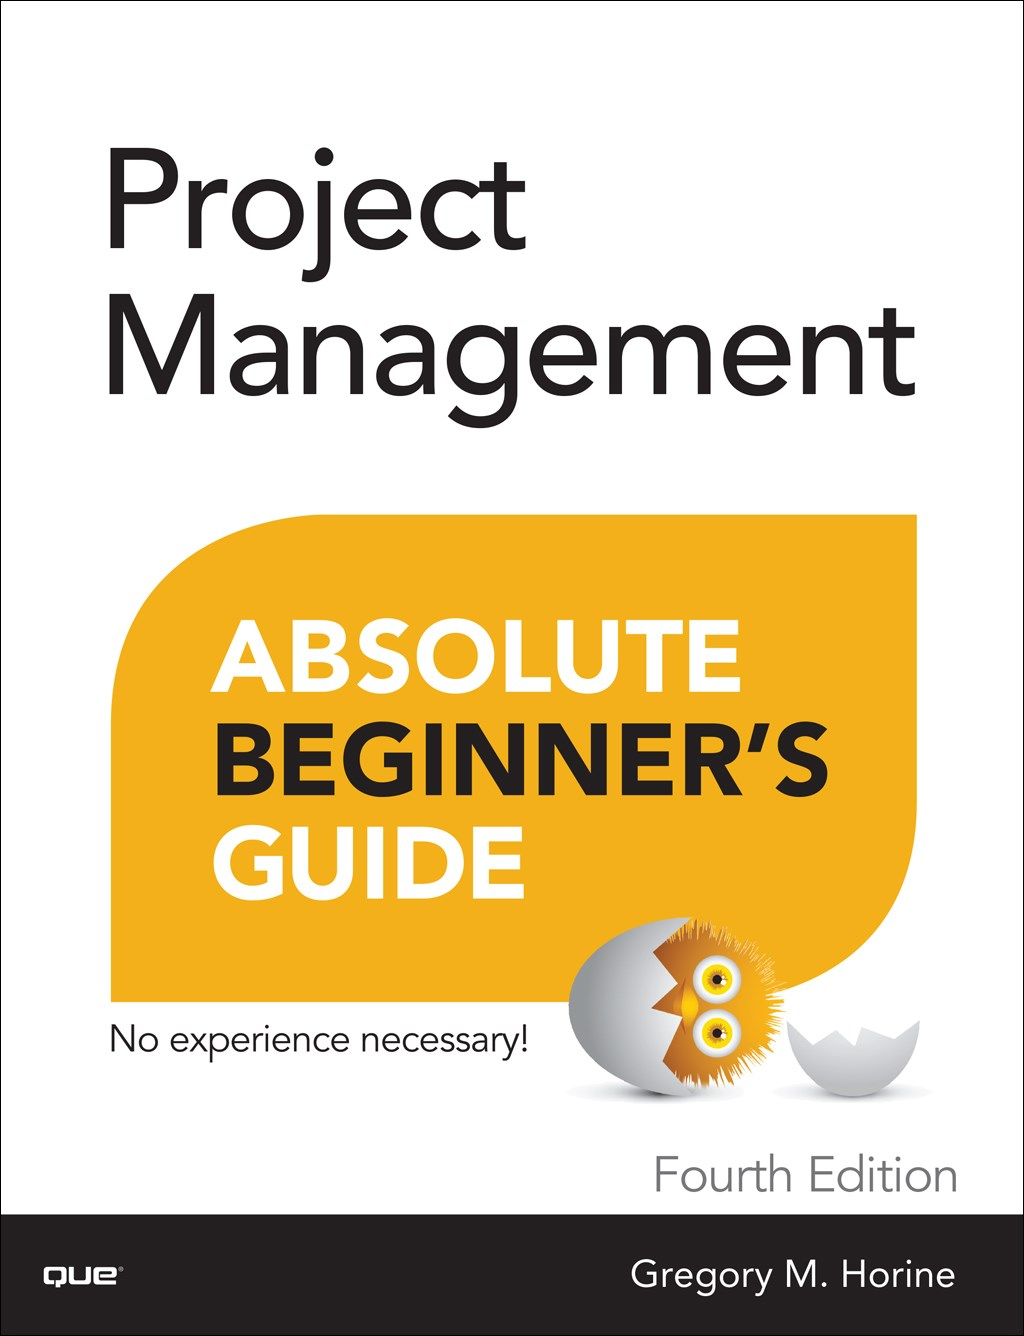 Project Management Absolute Beginner's Guide, 4th Edition